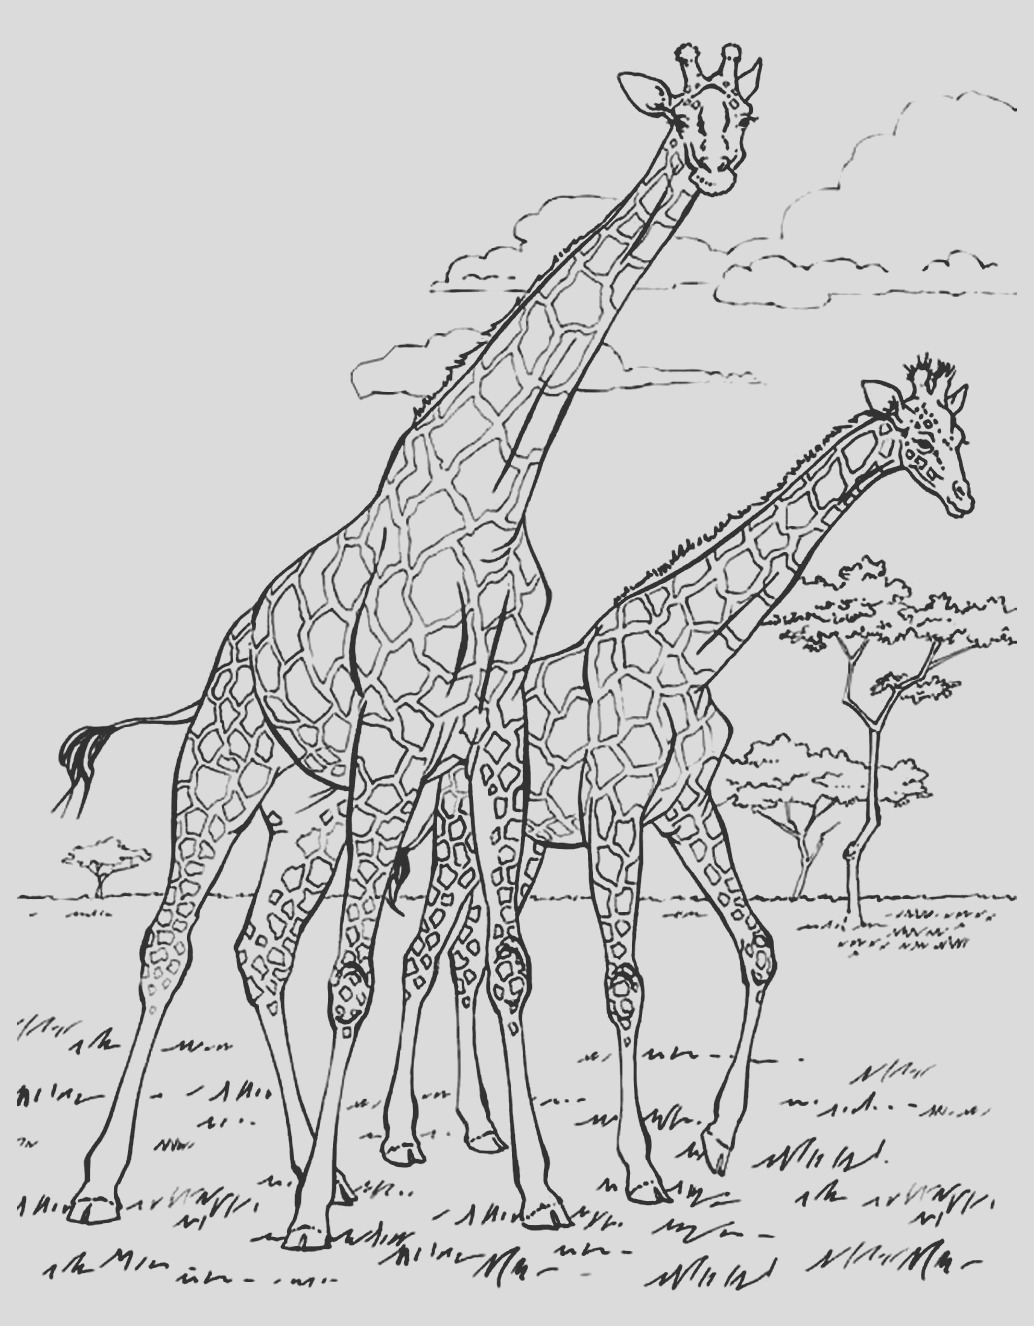 image=africa coloring adult africa giraffes 1